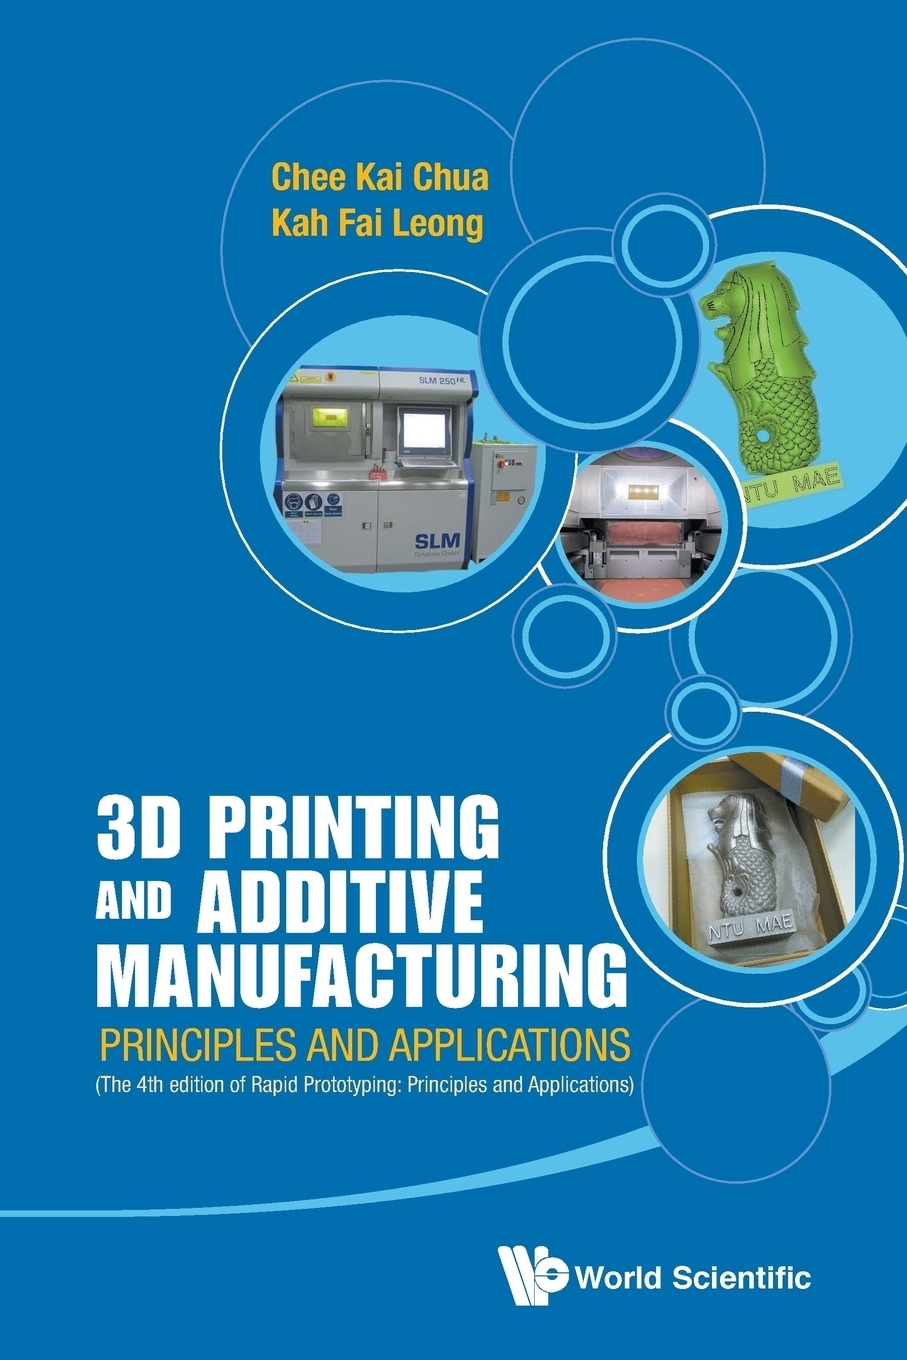 Книга 3D PRINTING AND ADDITIVE MANUFACTURING. PRINCIPLES AND APPLICATIONS (WITH COMPANION MEDIA PACK) - FOURTH EDITION OF RAPID PROTOTYPING. Chee Kai Chua, Kah Fai Leong